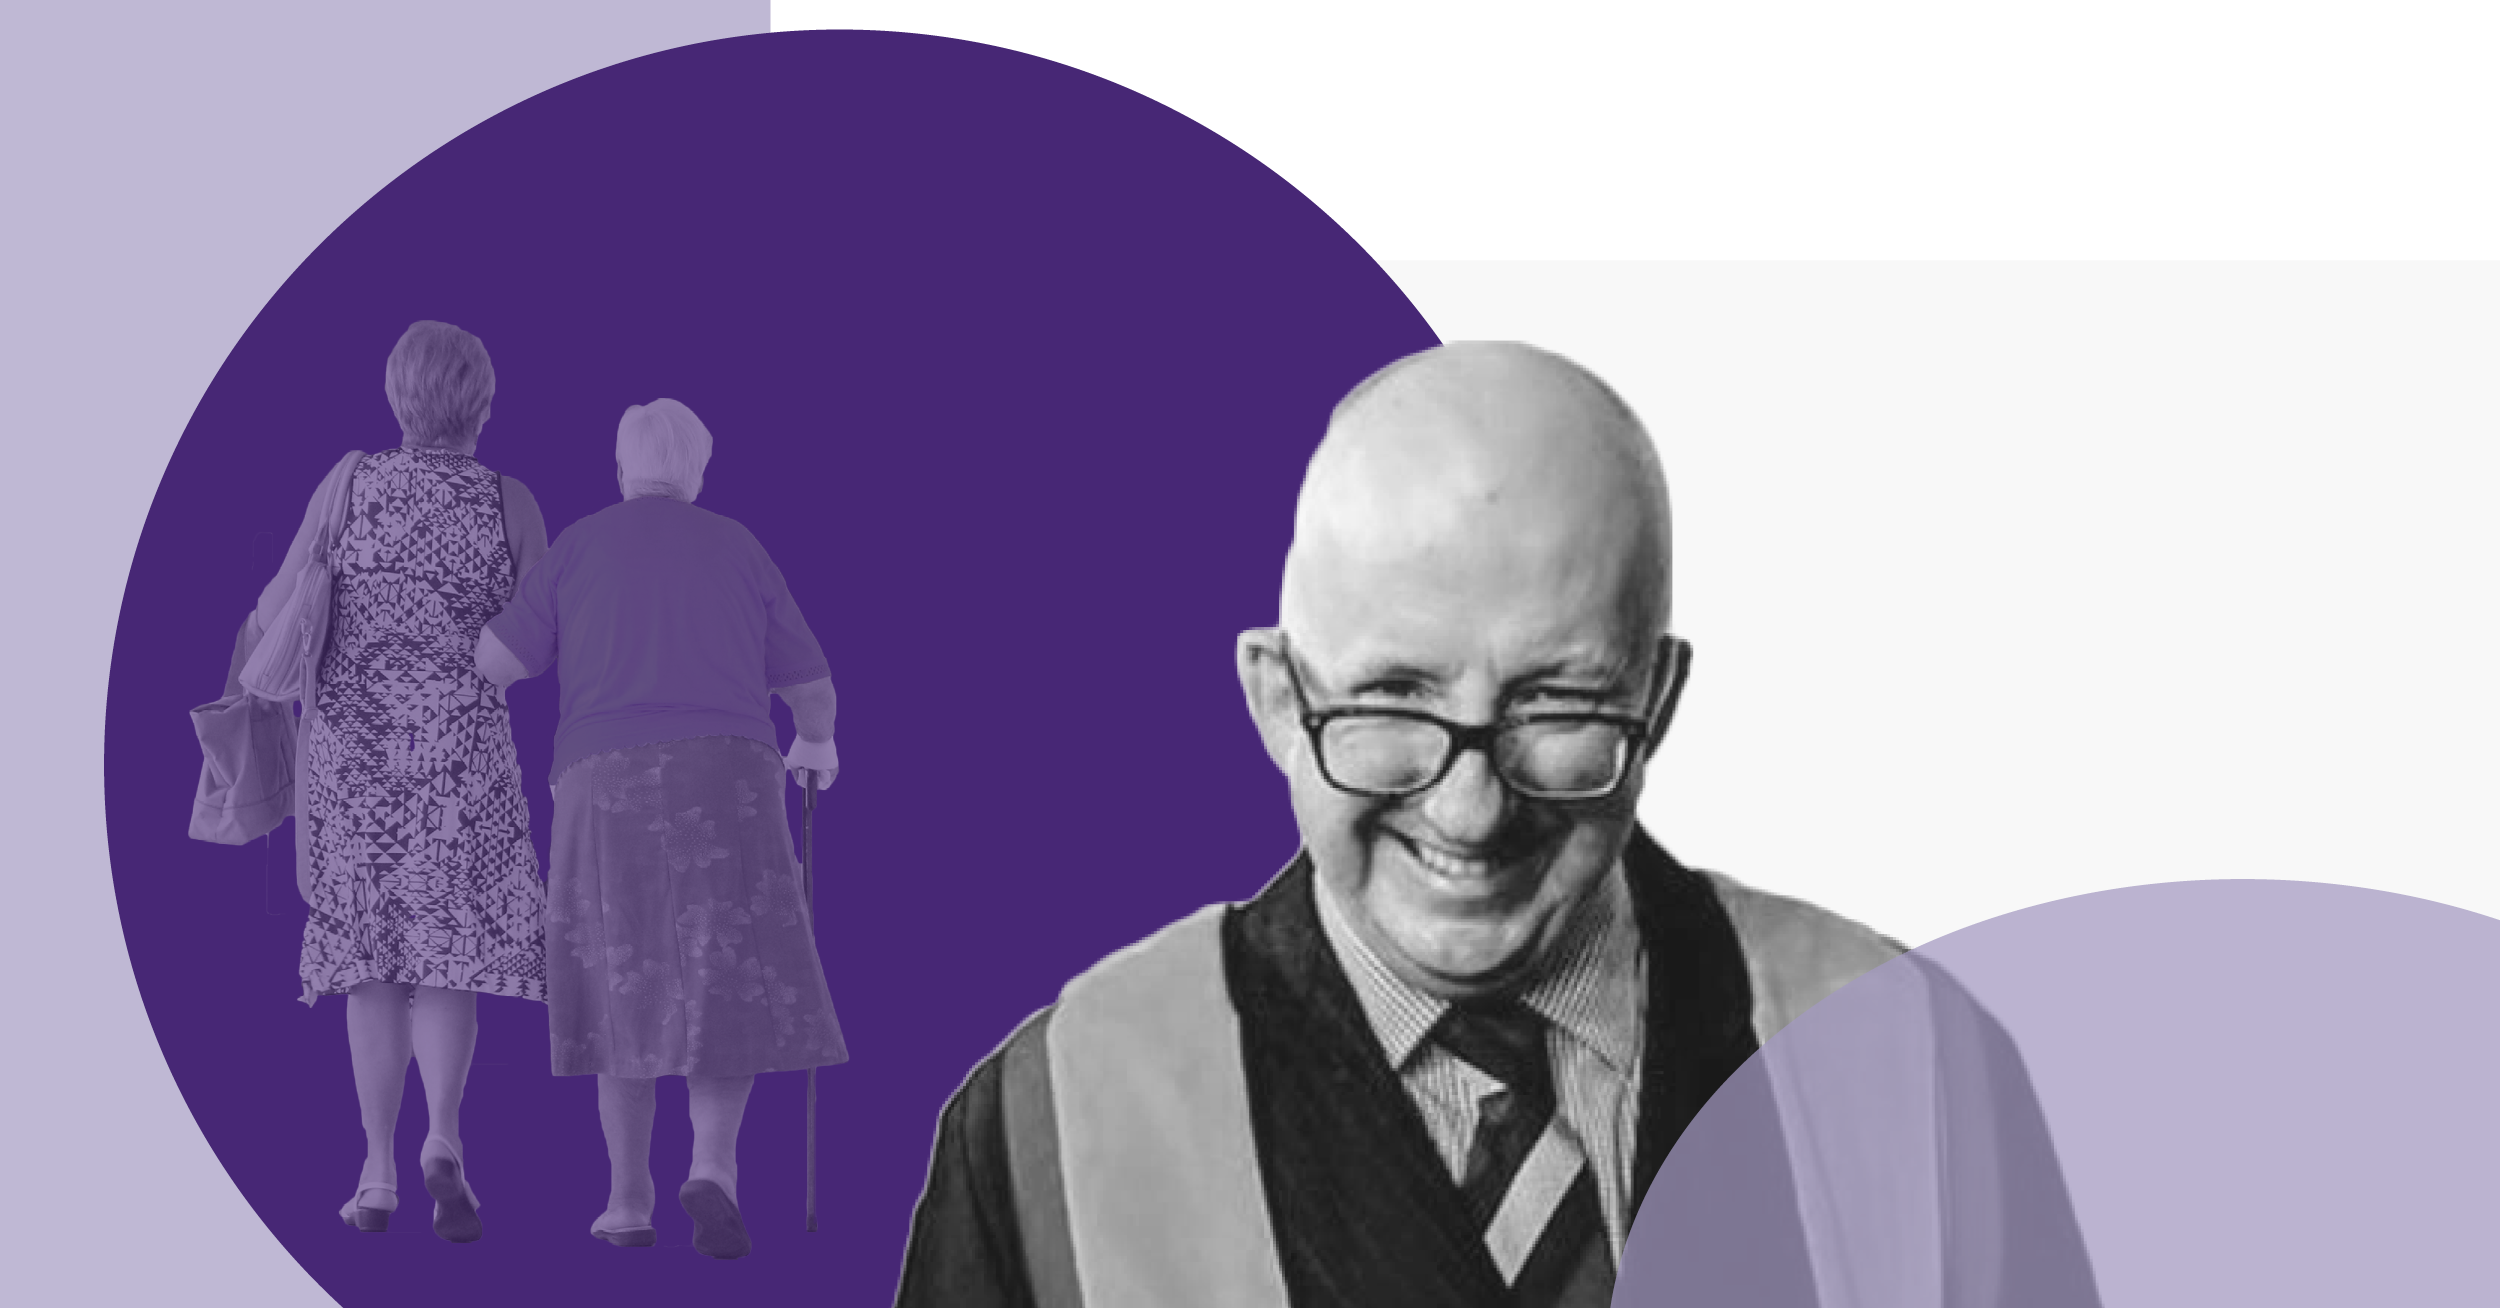 Dr Roddy Neilson in the foreground and an older woman and another woman walking away, with shaded purple decoration